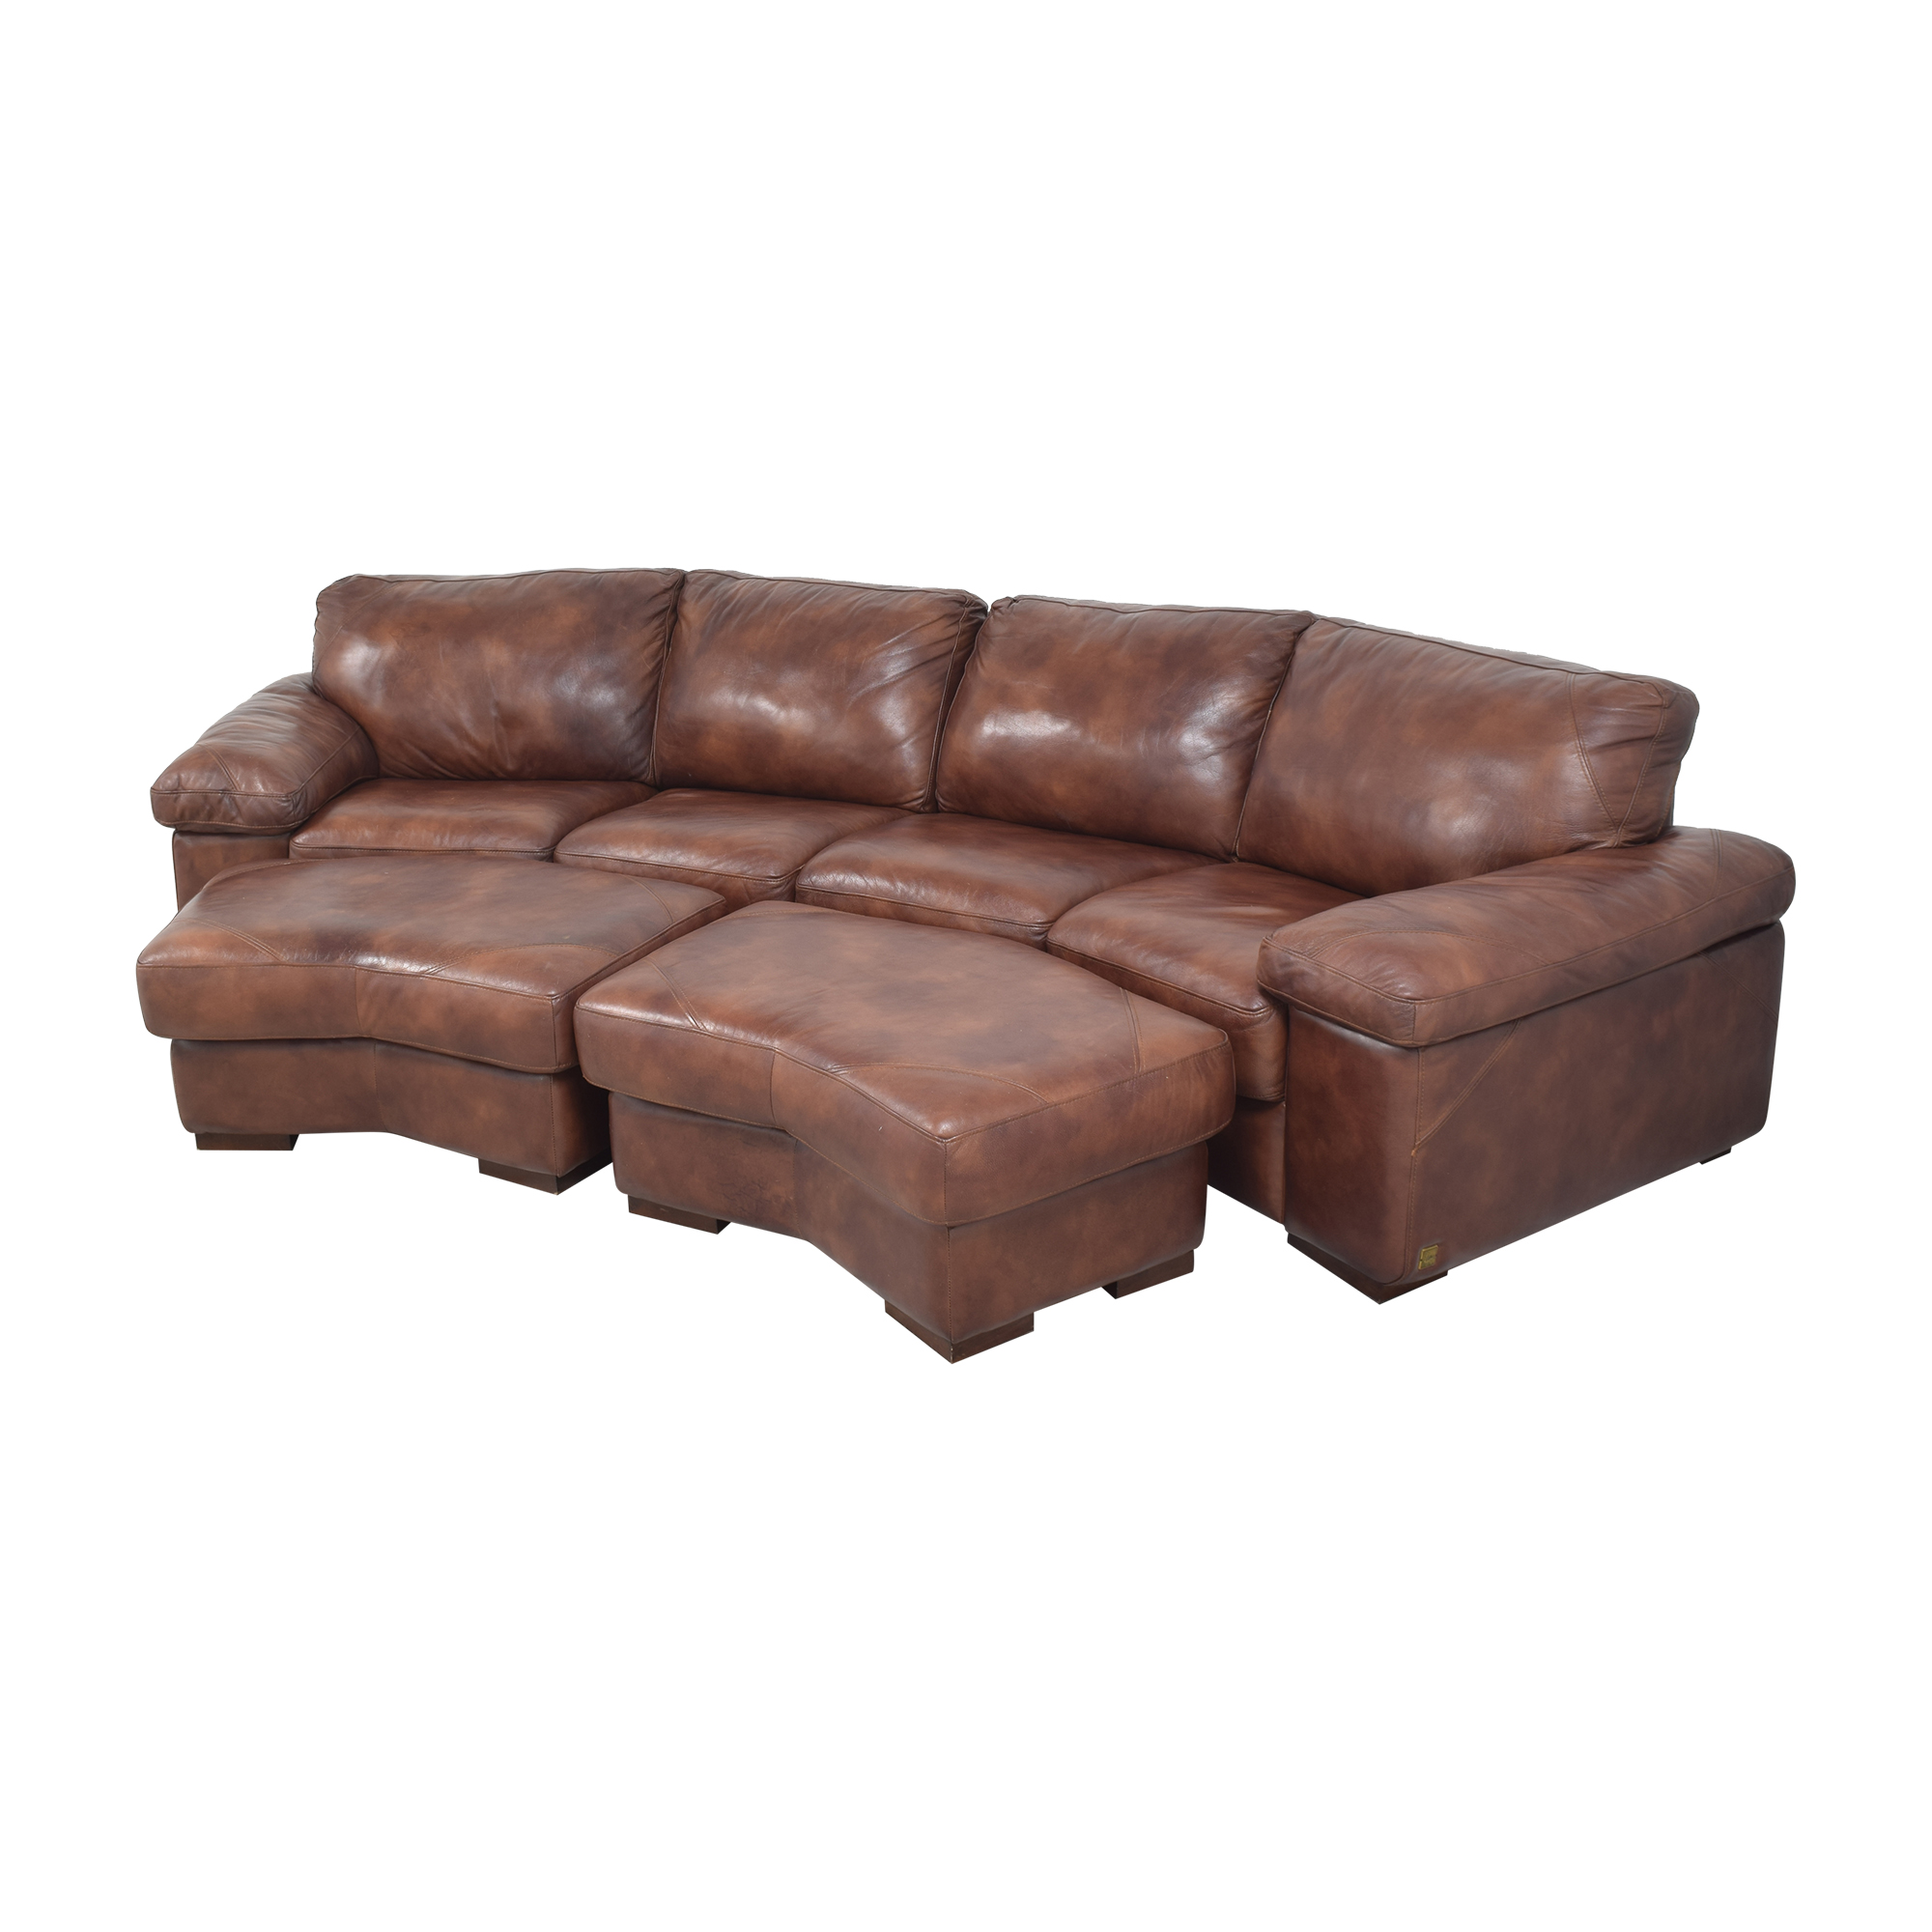 buy Bassett Two Piece Sectional Sofa with Ottomans Bassett Furniture Sectionals